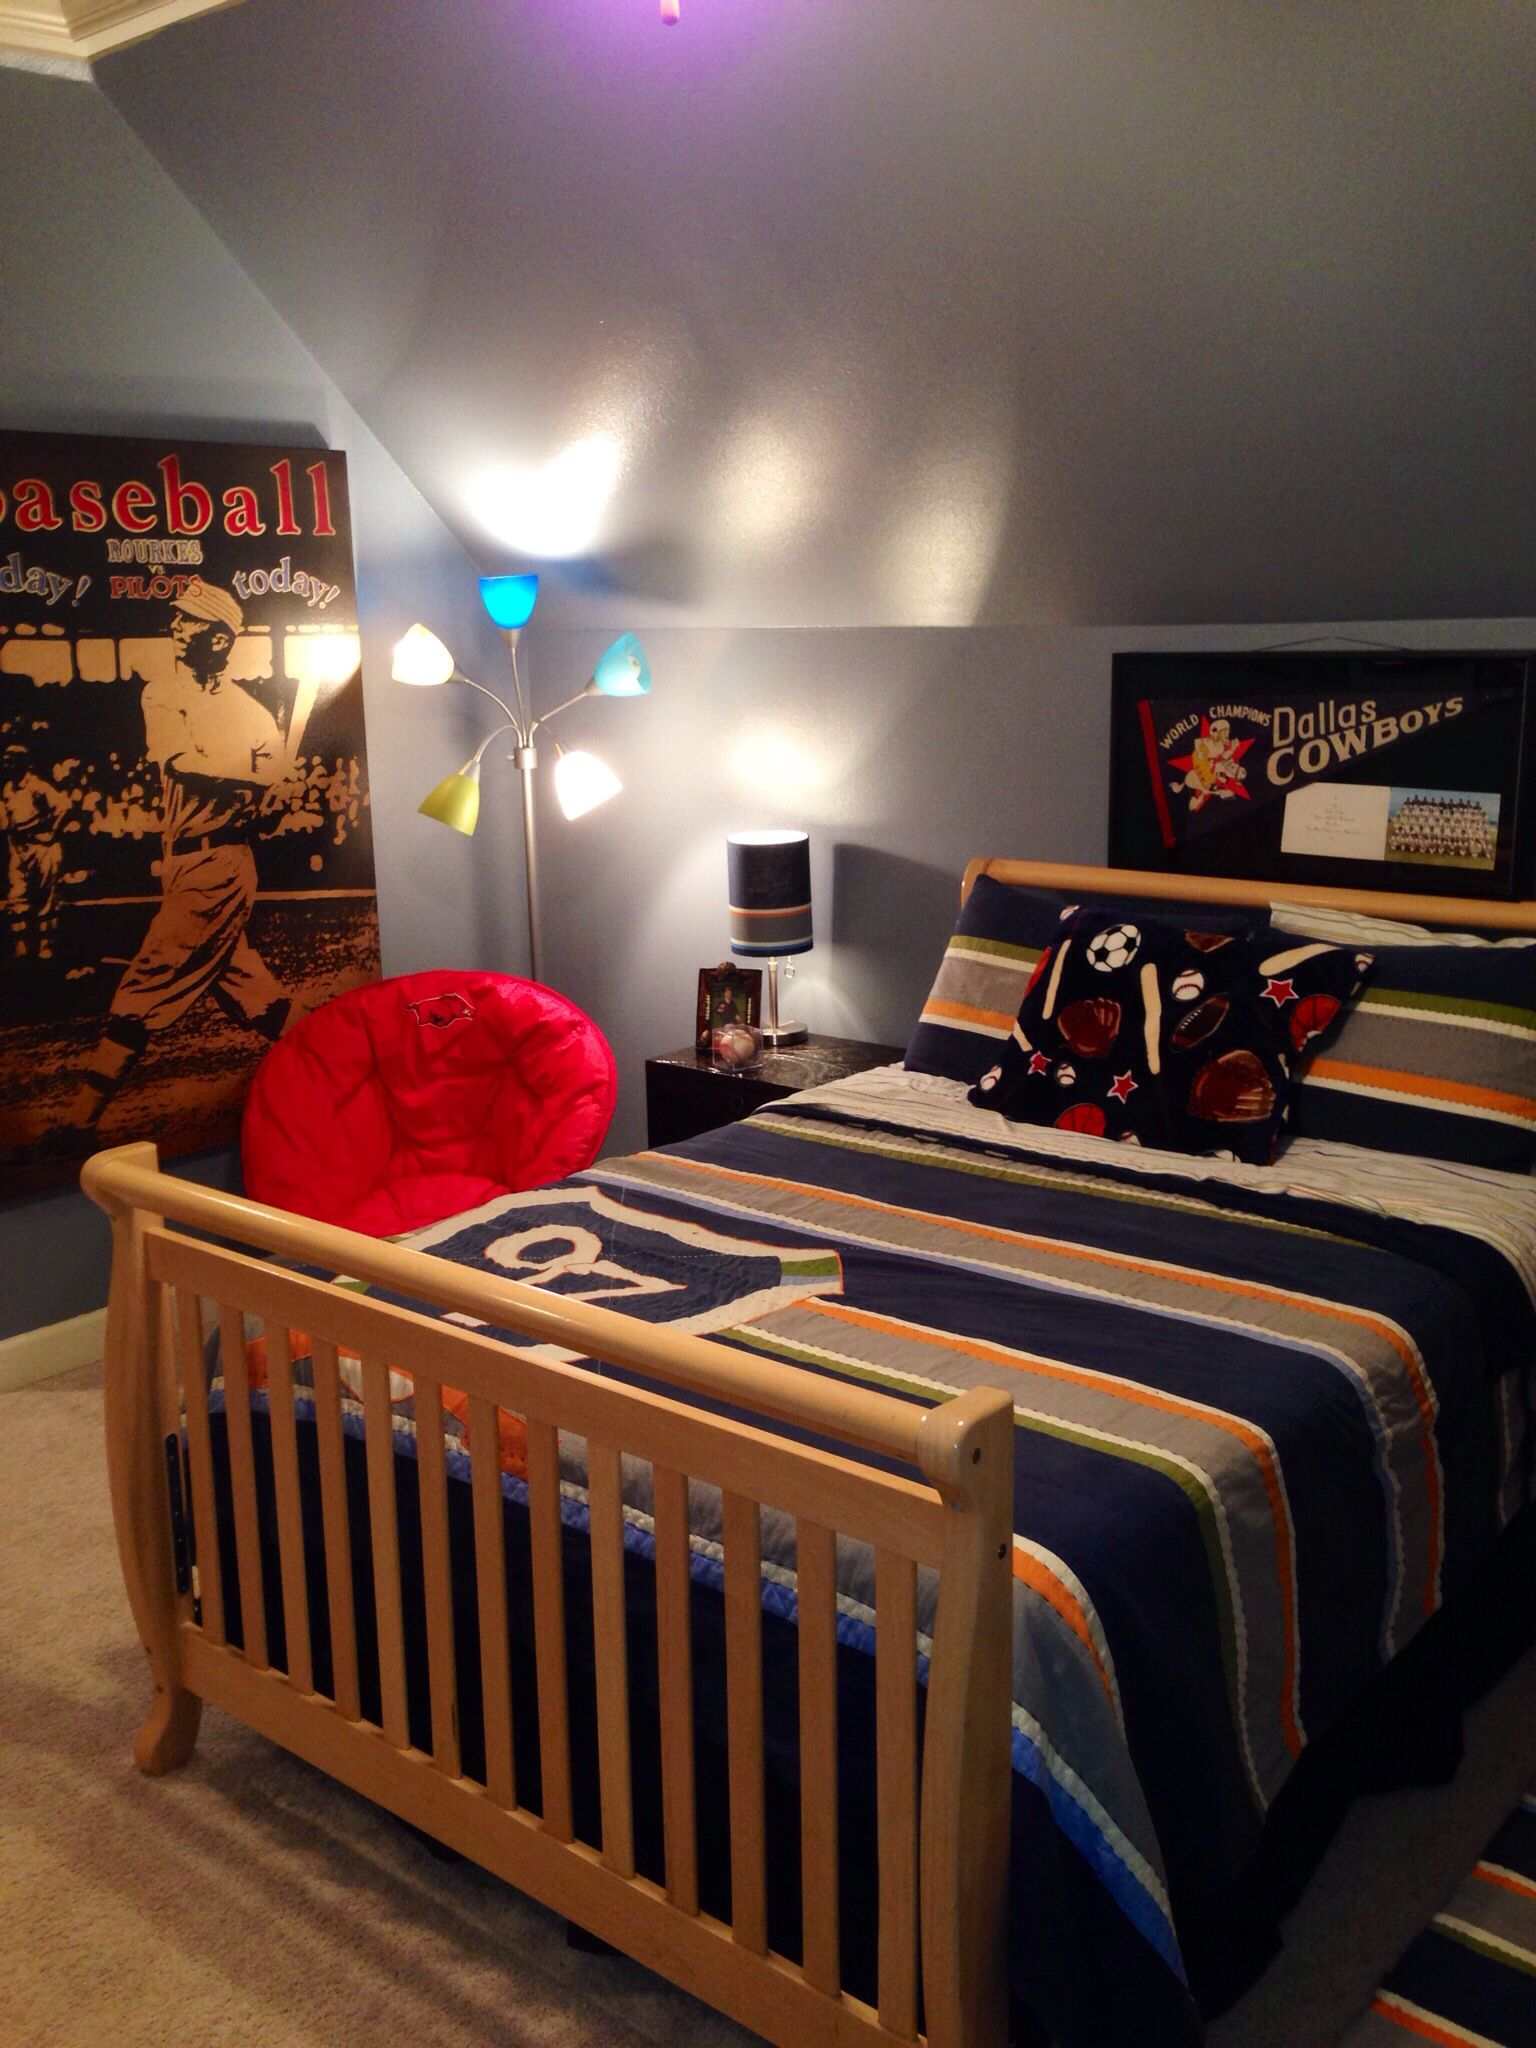 10 Year Bedroom Ideas: Nice Room For 10 Year Old Boy